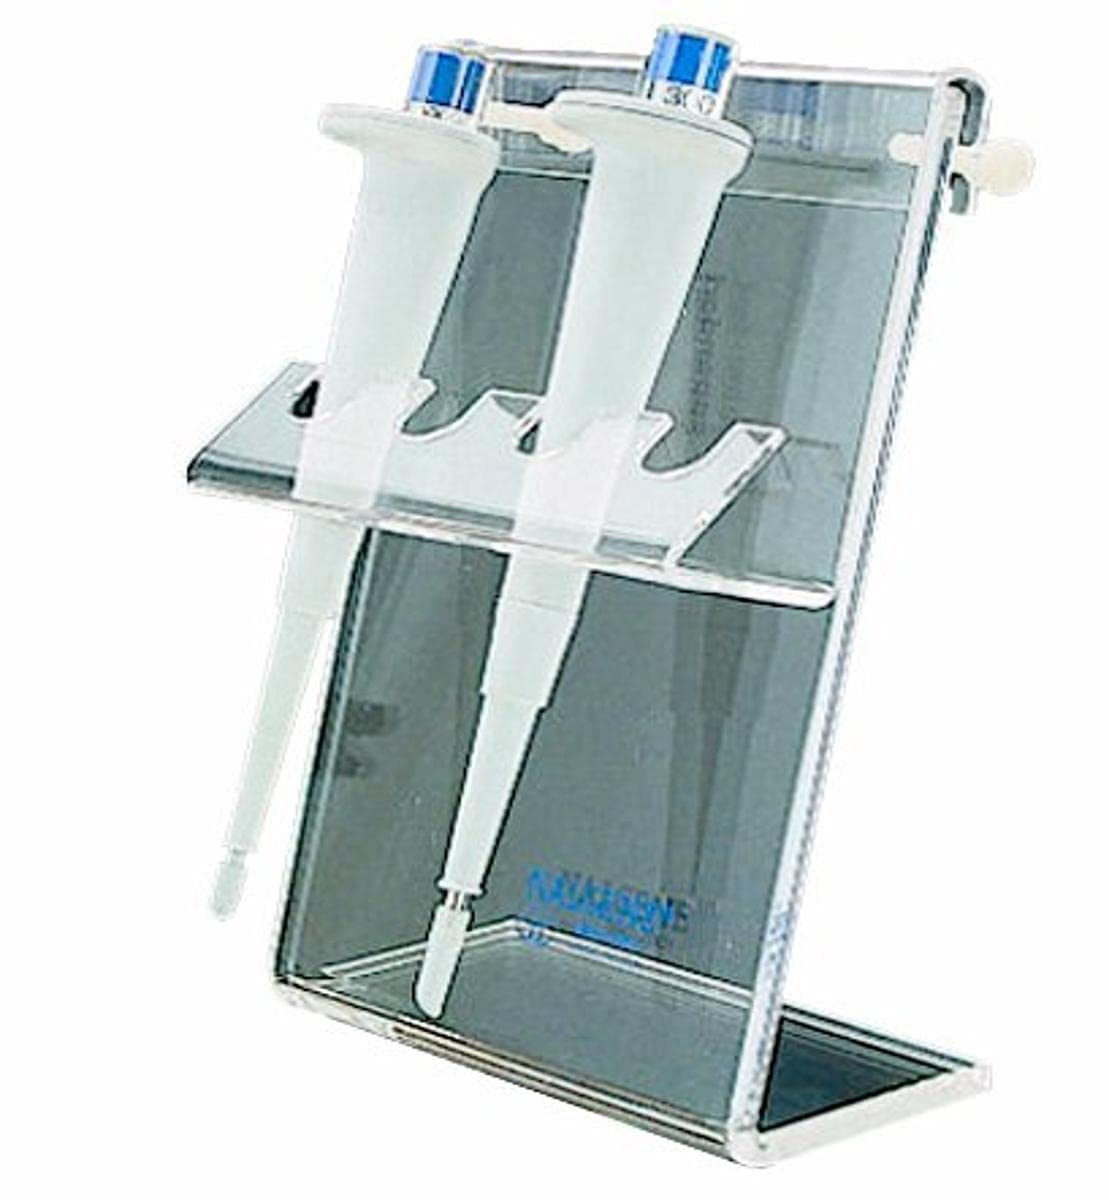 Austin Mall Nalgene 6803-0001 Acrylic Pipet Rack x 152mm with Stand Cheap mail order specialty store Length